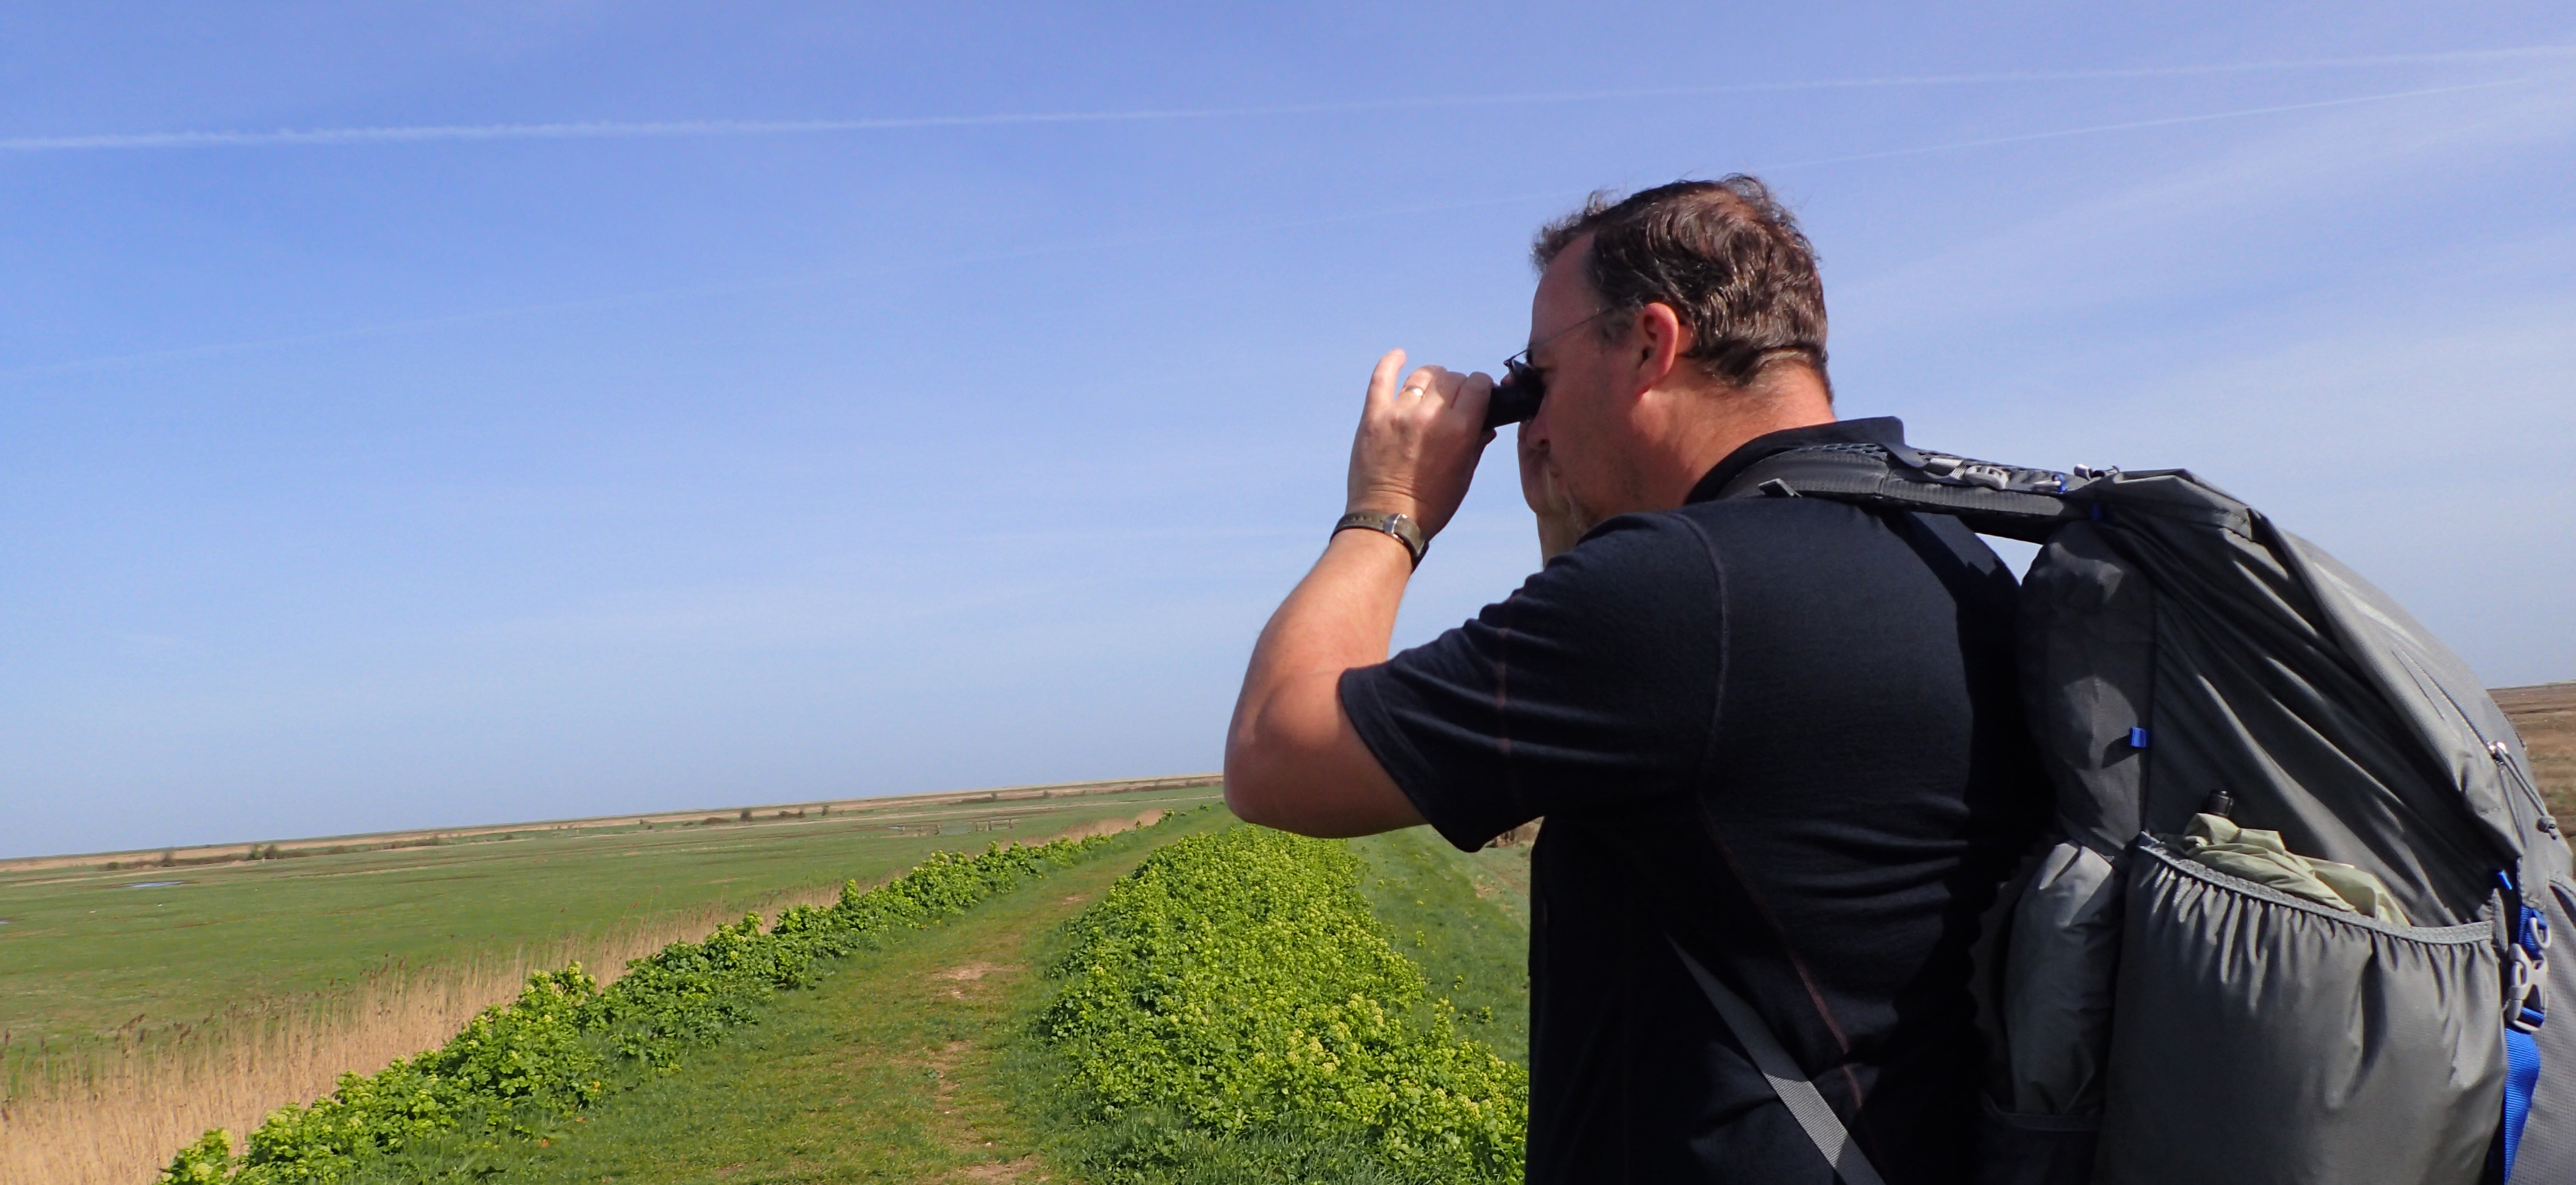 Because I knew that the nature watching was going to be so good on this trail, especially the Norfolk Coast Path, I wanted to include some optics in my kit list. Eschewing my heavy binoculars, I took a 109g 8x20 monocular. I was pleased I did as it was often used